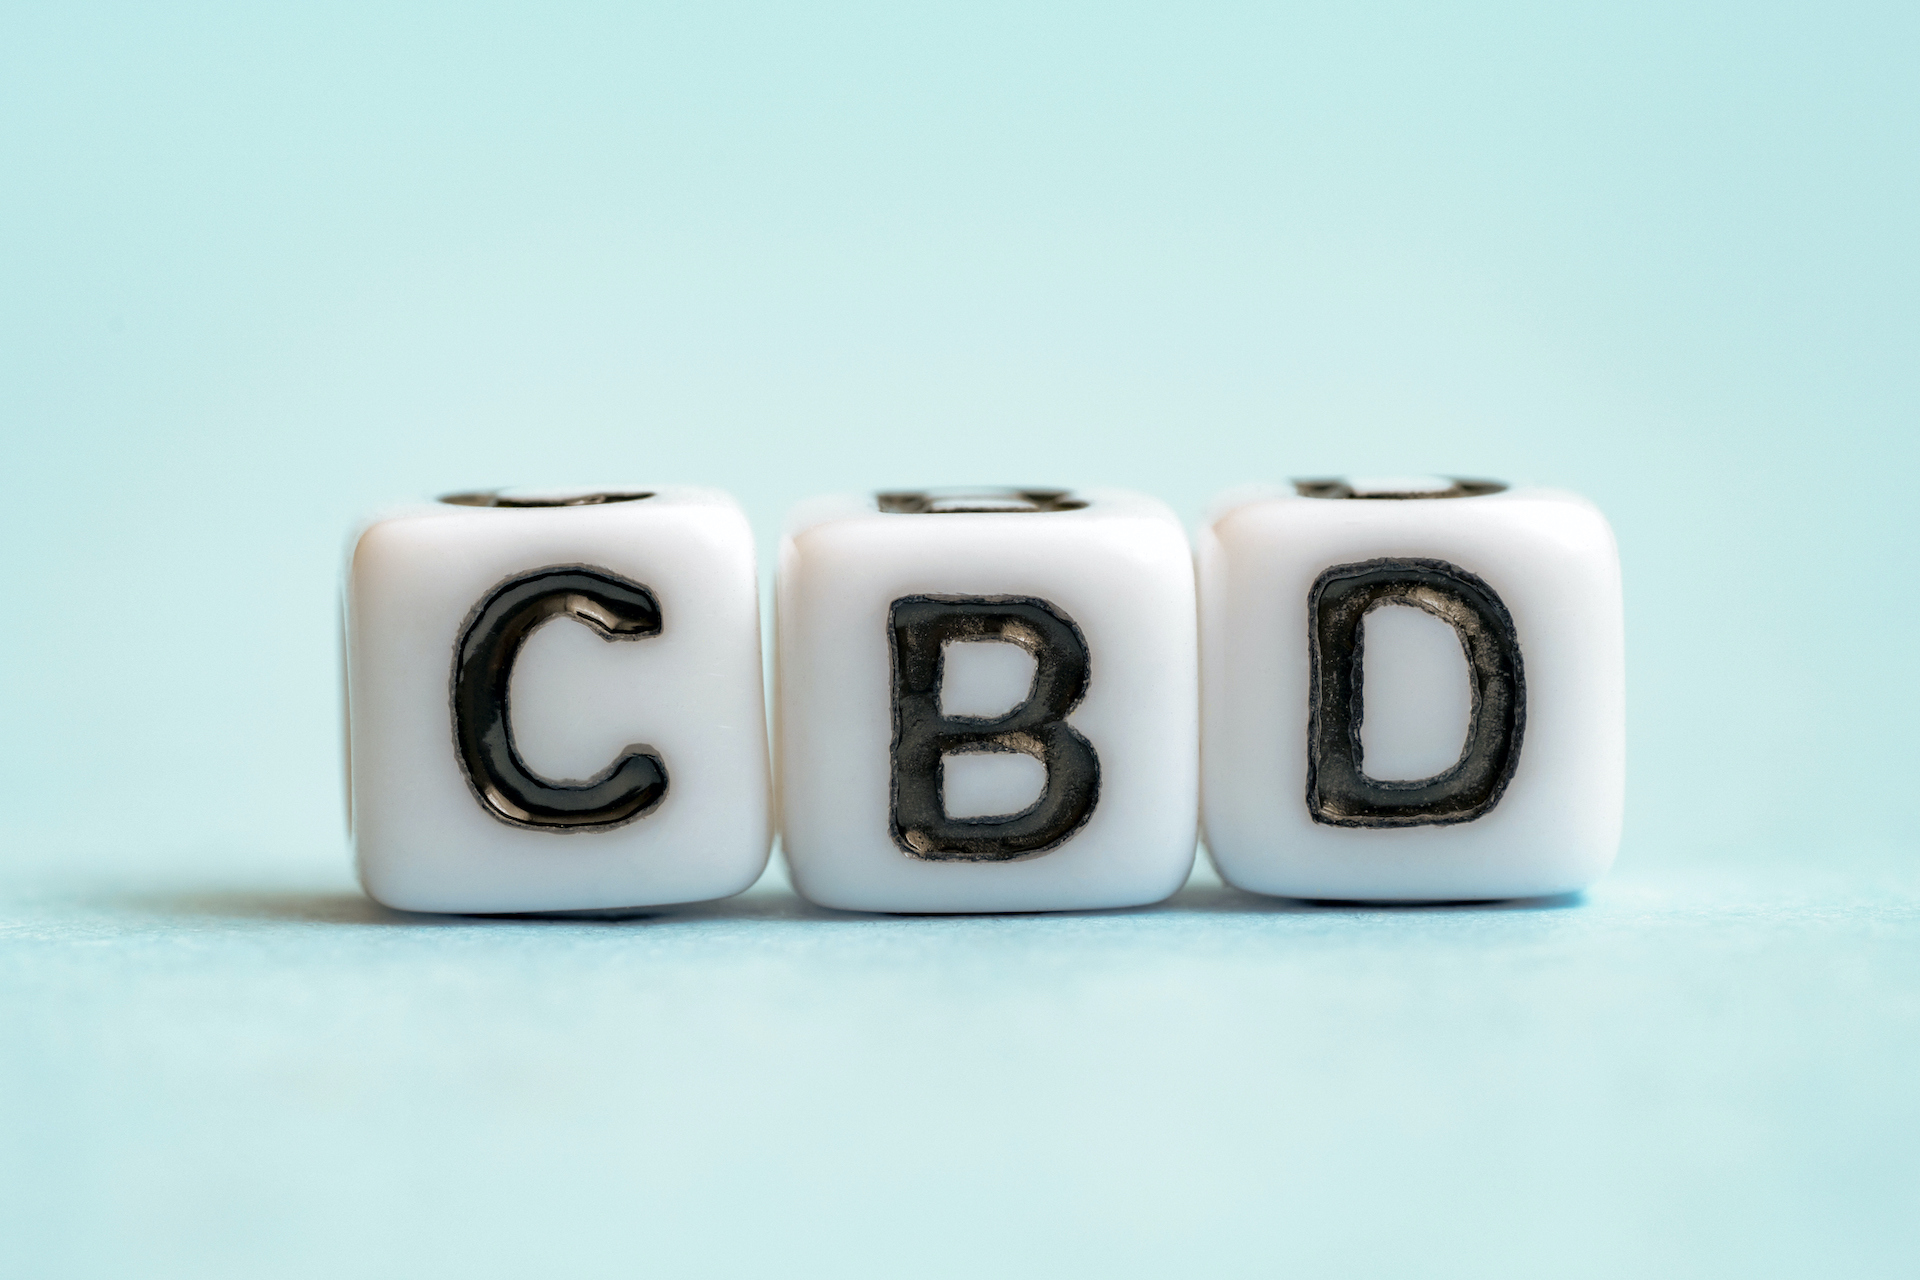 CBD for pain, anxiety, sleep and other conditions - featured image